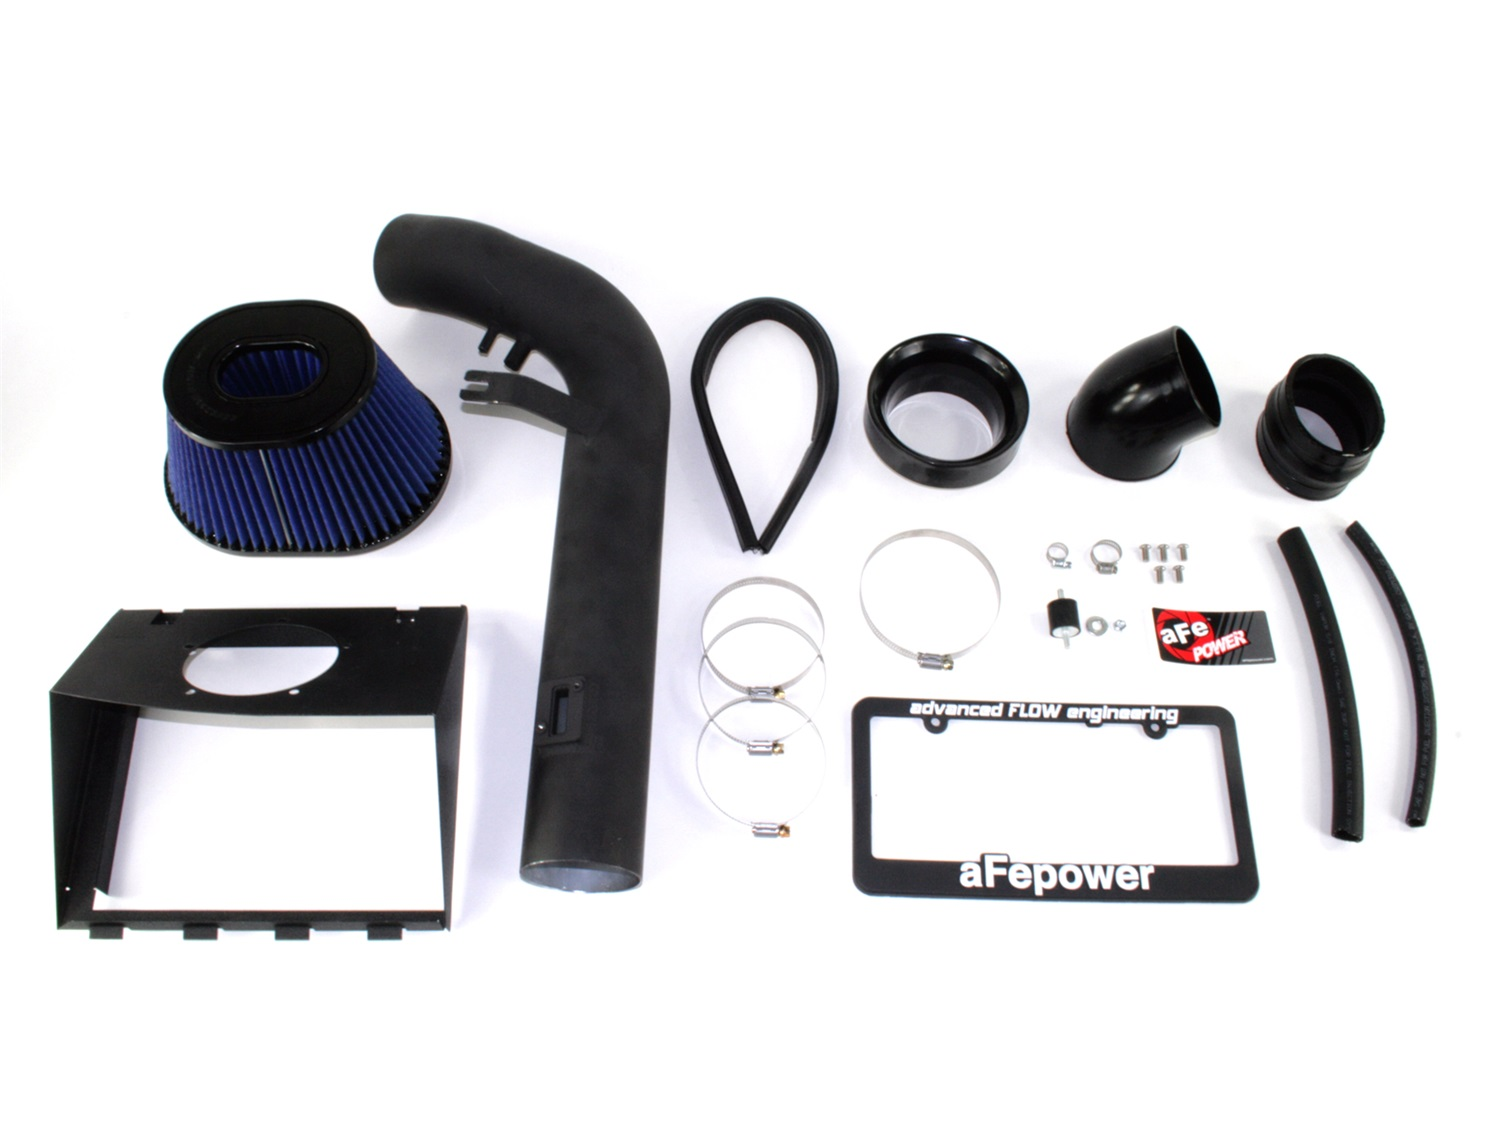 aFe Power 51-11902-1 MagnumFORCE Stage-2 PRO DRY S Intake System Fits F-150 51-11902-1